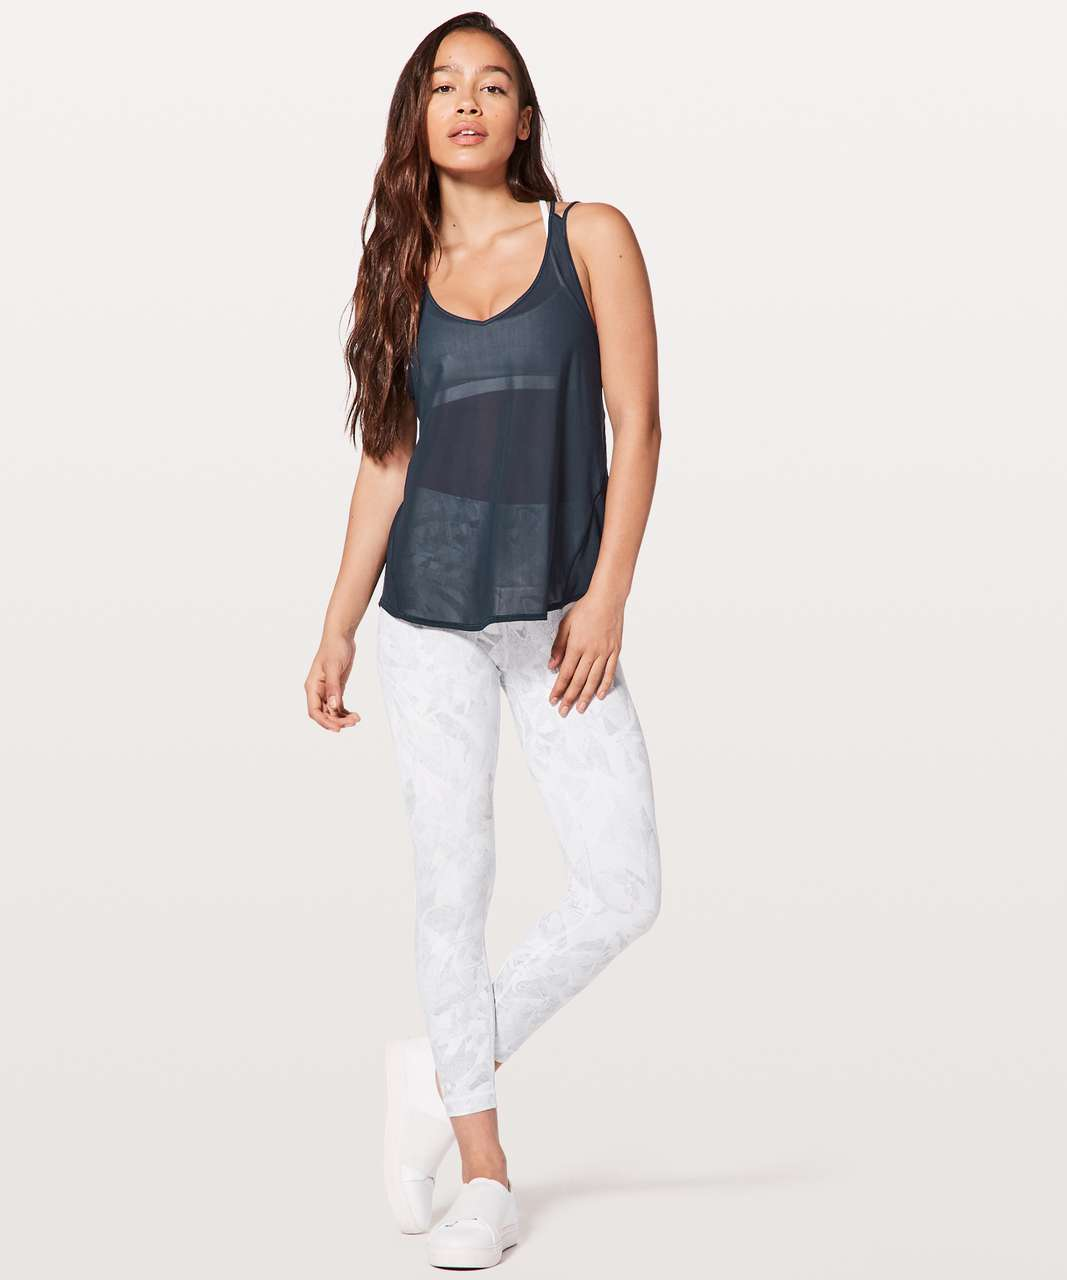 Lululemon Such A Cinch Tank - True Navy